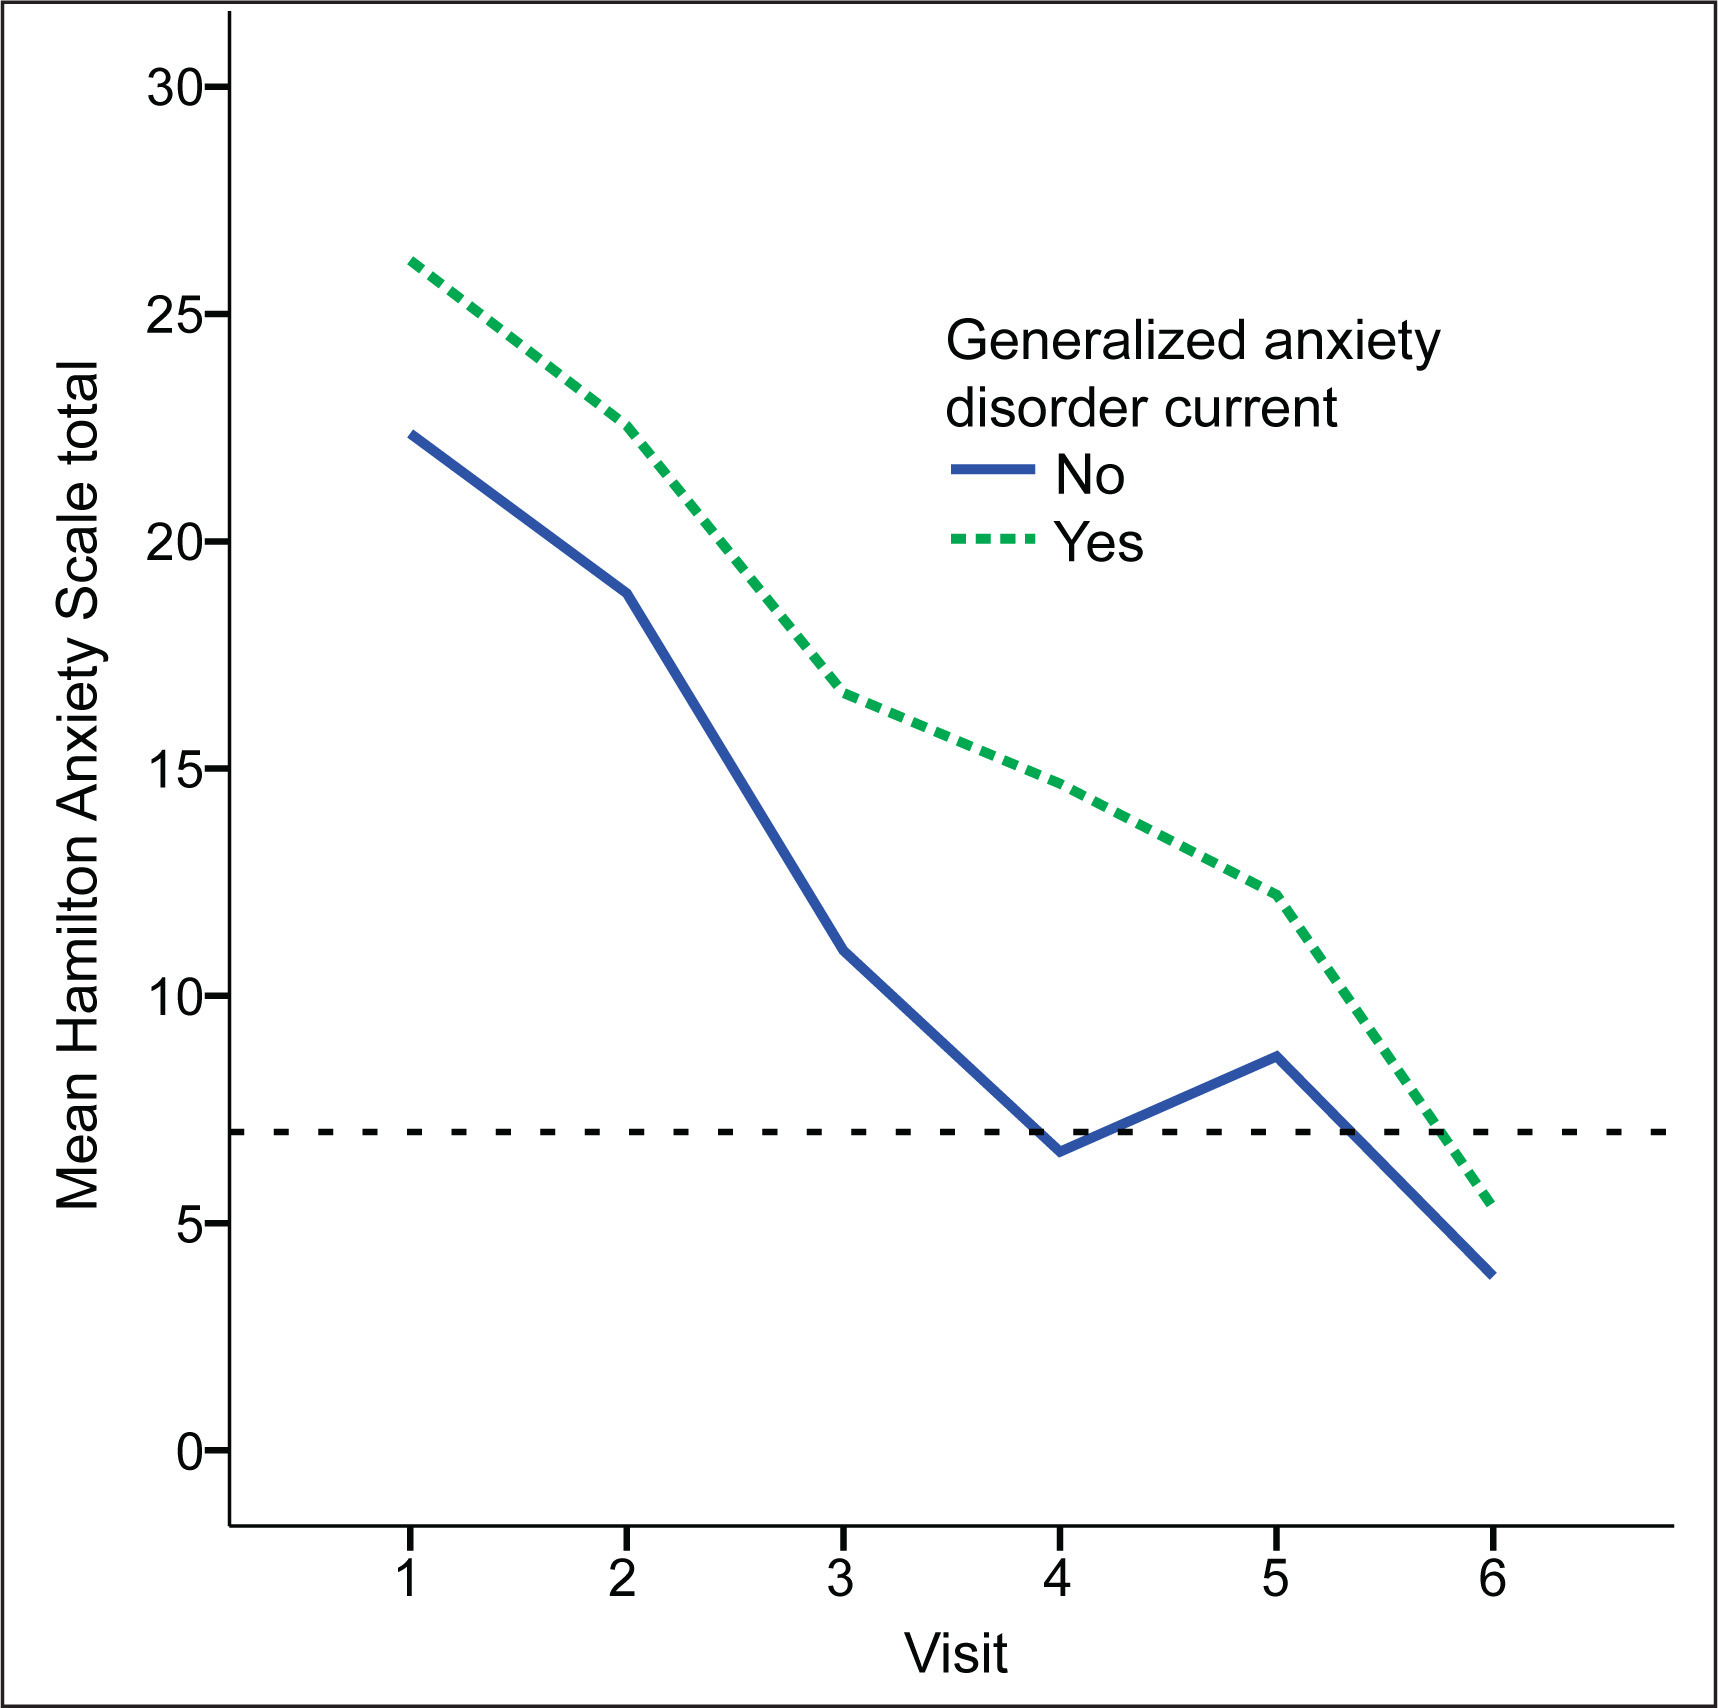 a report on generalized anxiety disorder and major depressive disorder Post-typhoon prevalence of post-traumatic stress disorder, major depressive disorder, panic disorder and generalized anxiety disorder in a vietnamese sample.